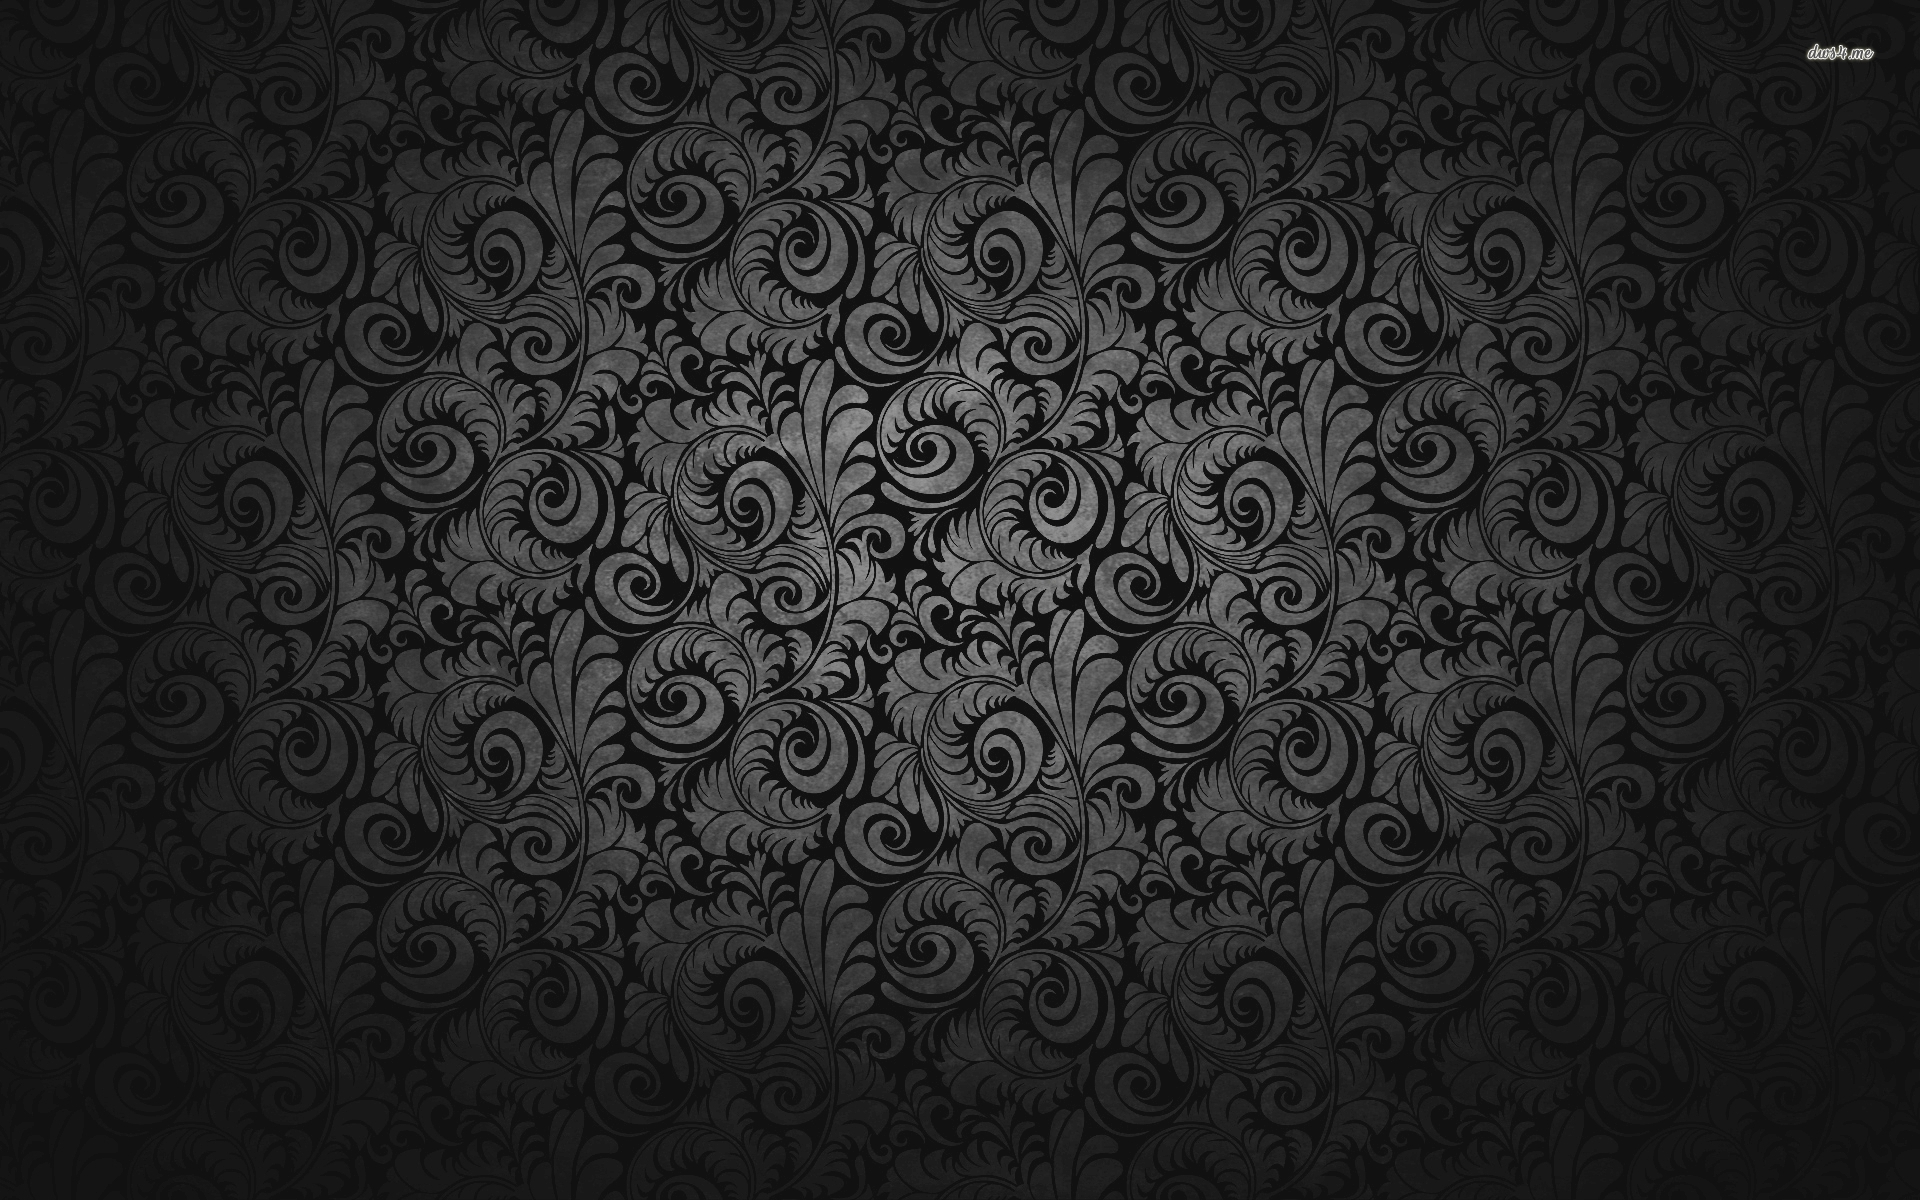 Black Floral Wallpaper 1920x1200 10008